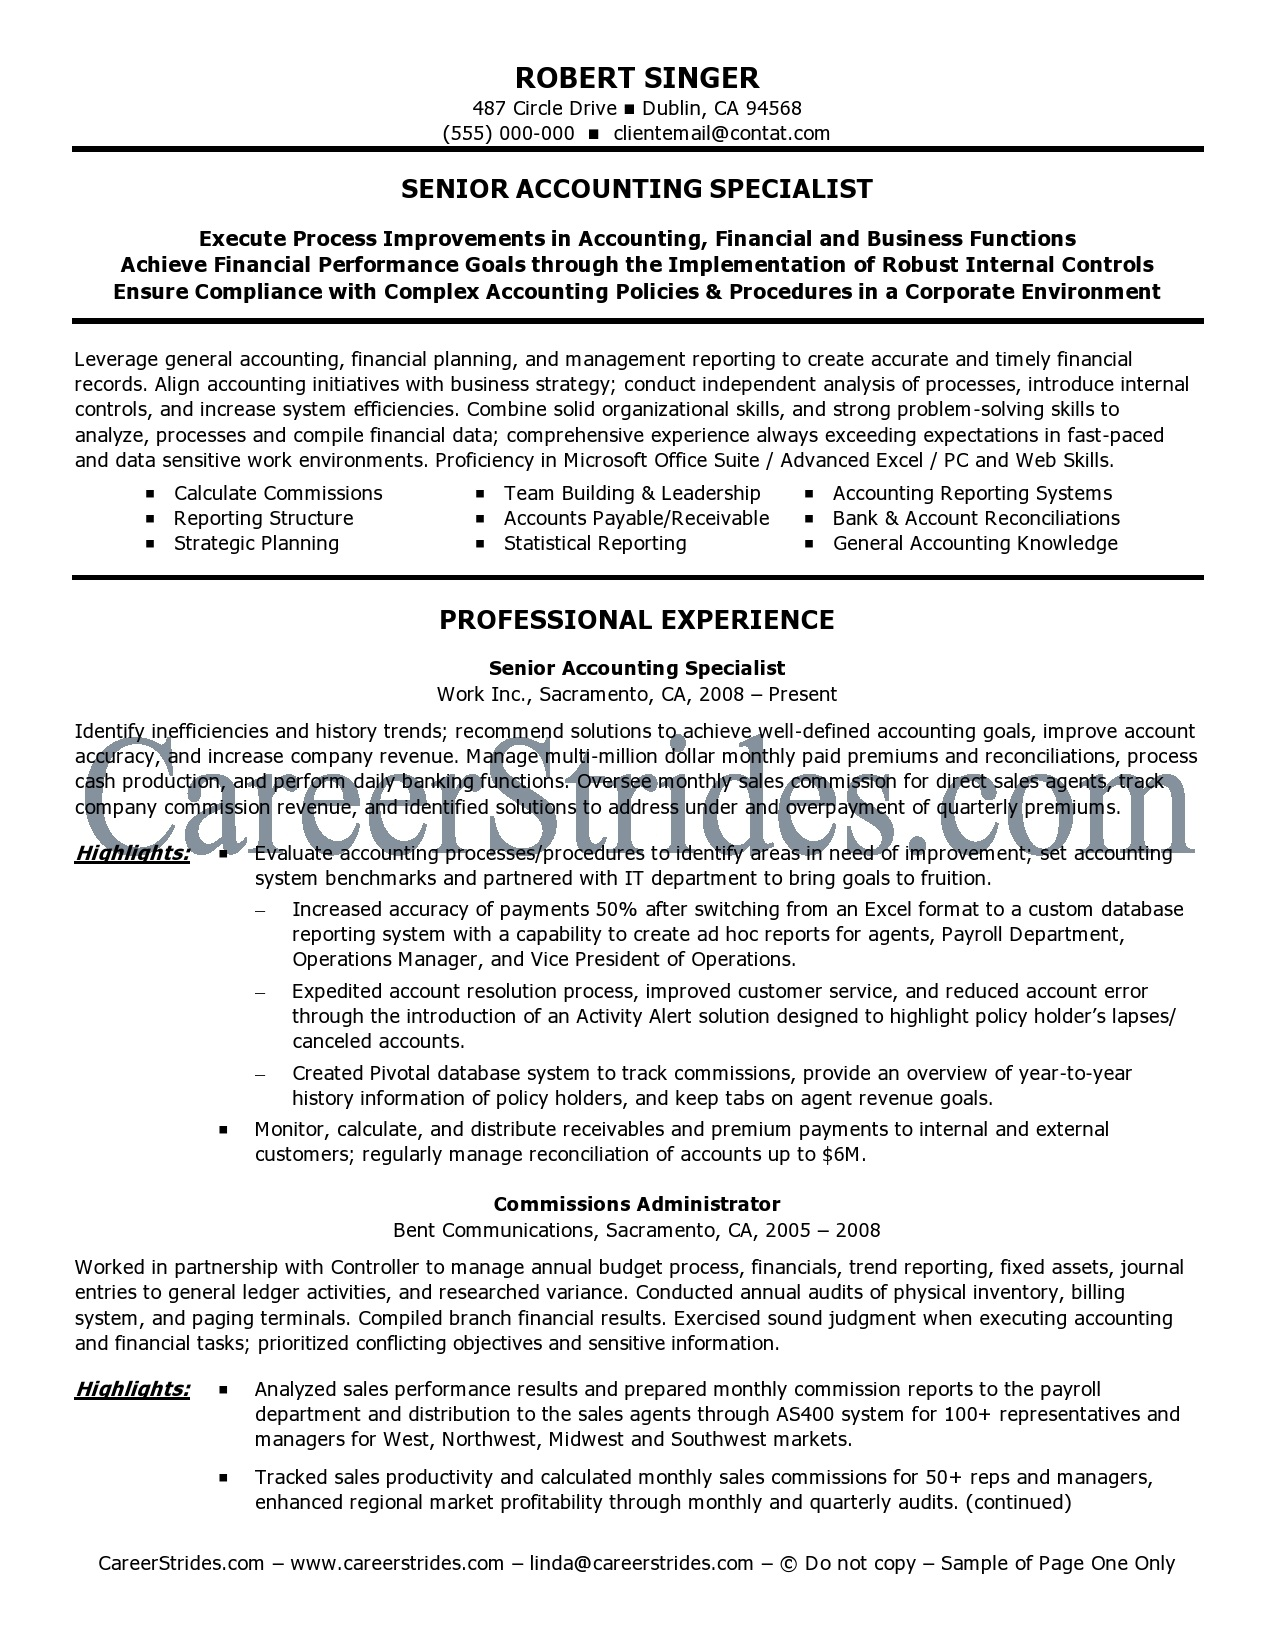 resume senior staff accountant resume samples resume senior staff accountant job description staff accountant accountingjobstoday senior accountant sample professional resume